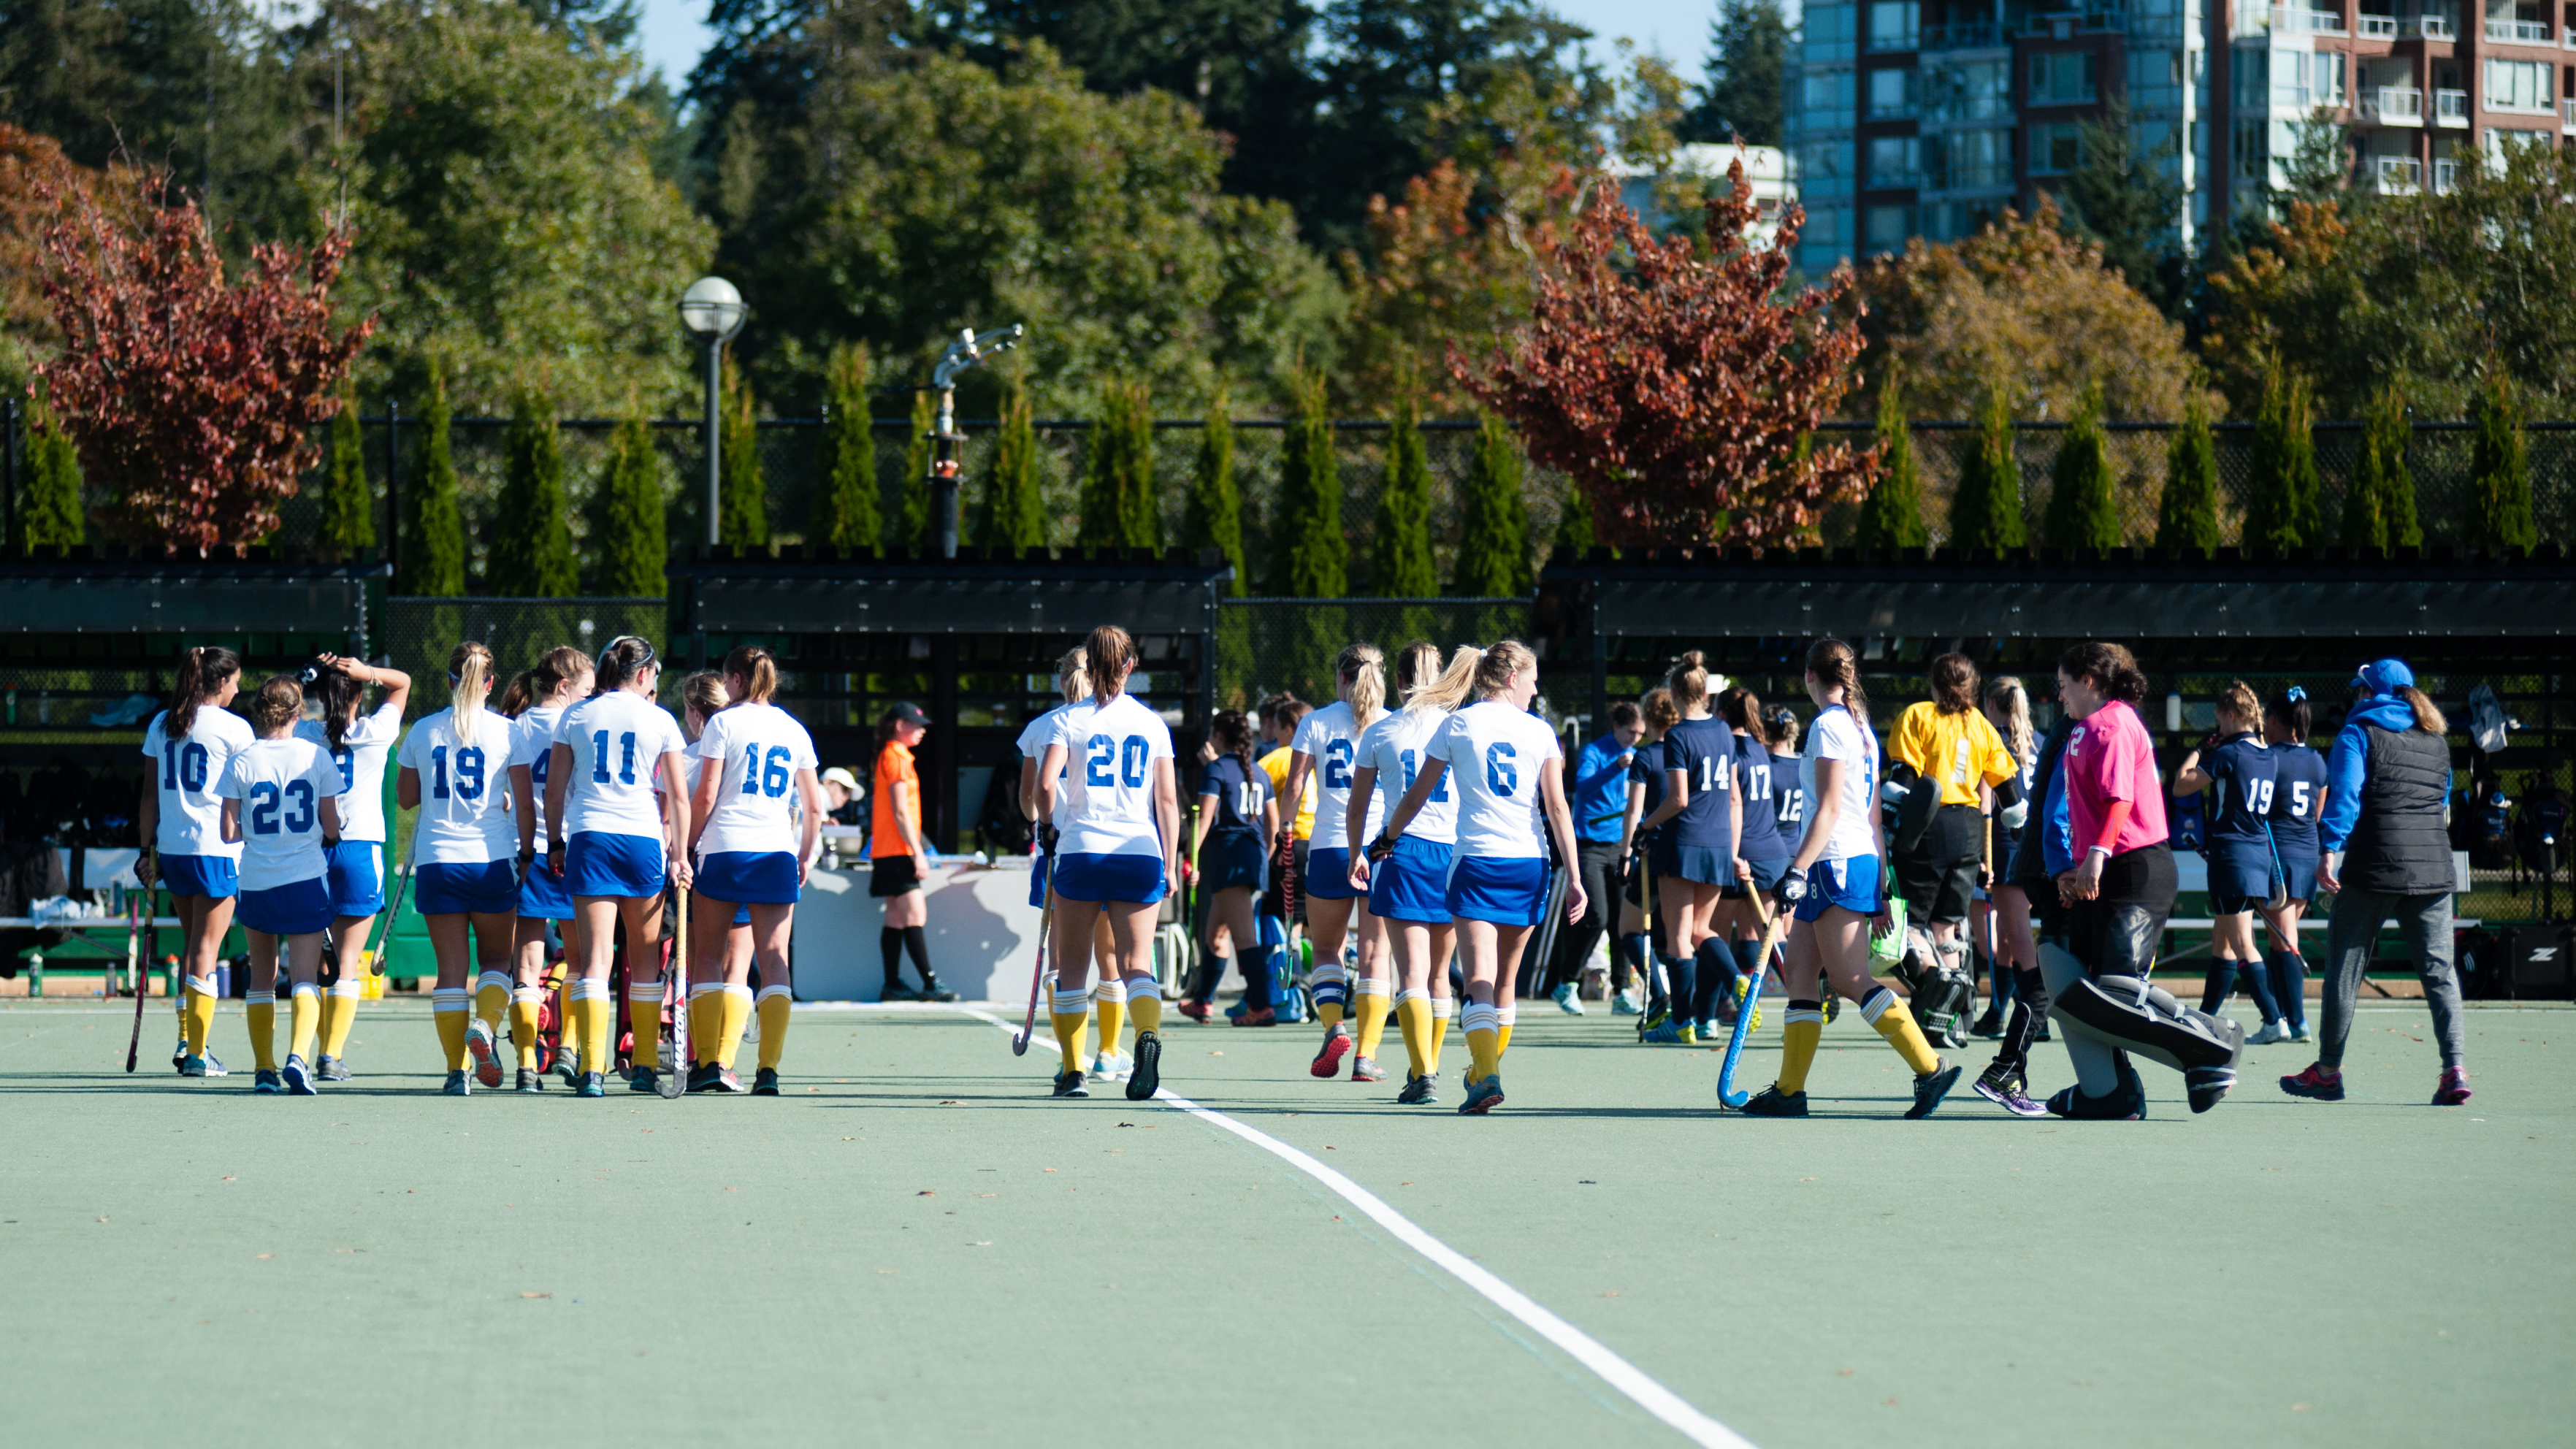 UBC walks off after continuing their undefeated streak.